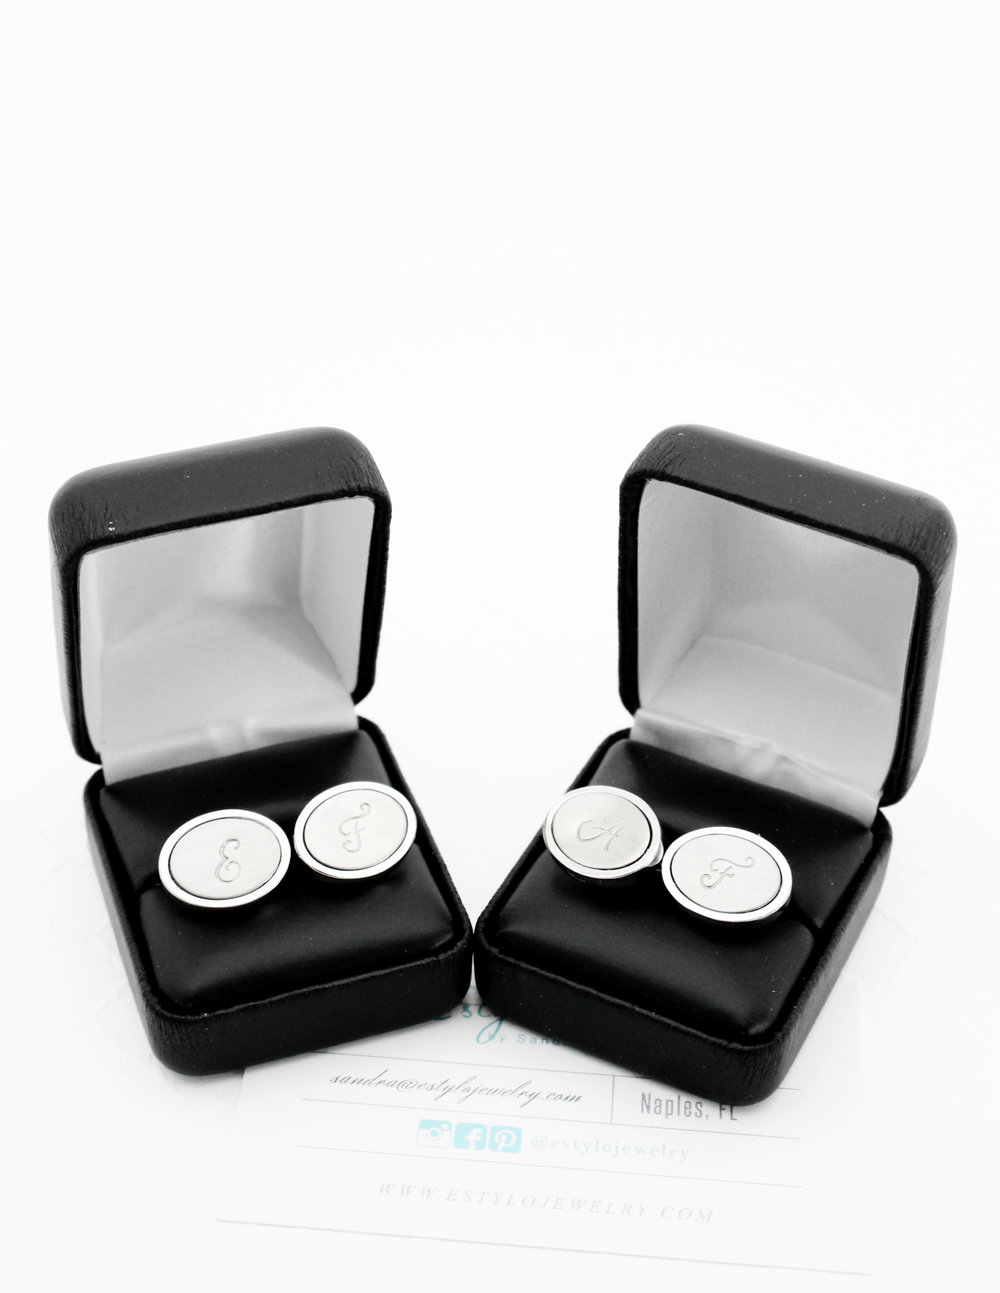 Monogram Cufflinks Gift for Groomsman.jpg